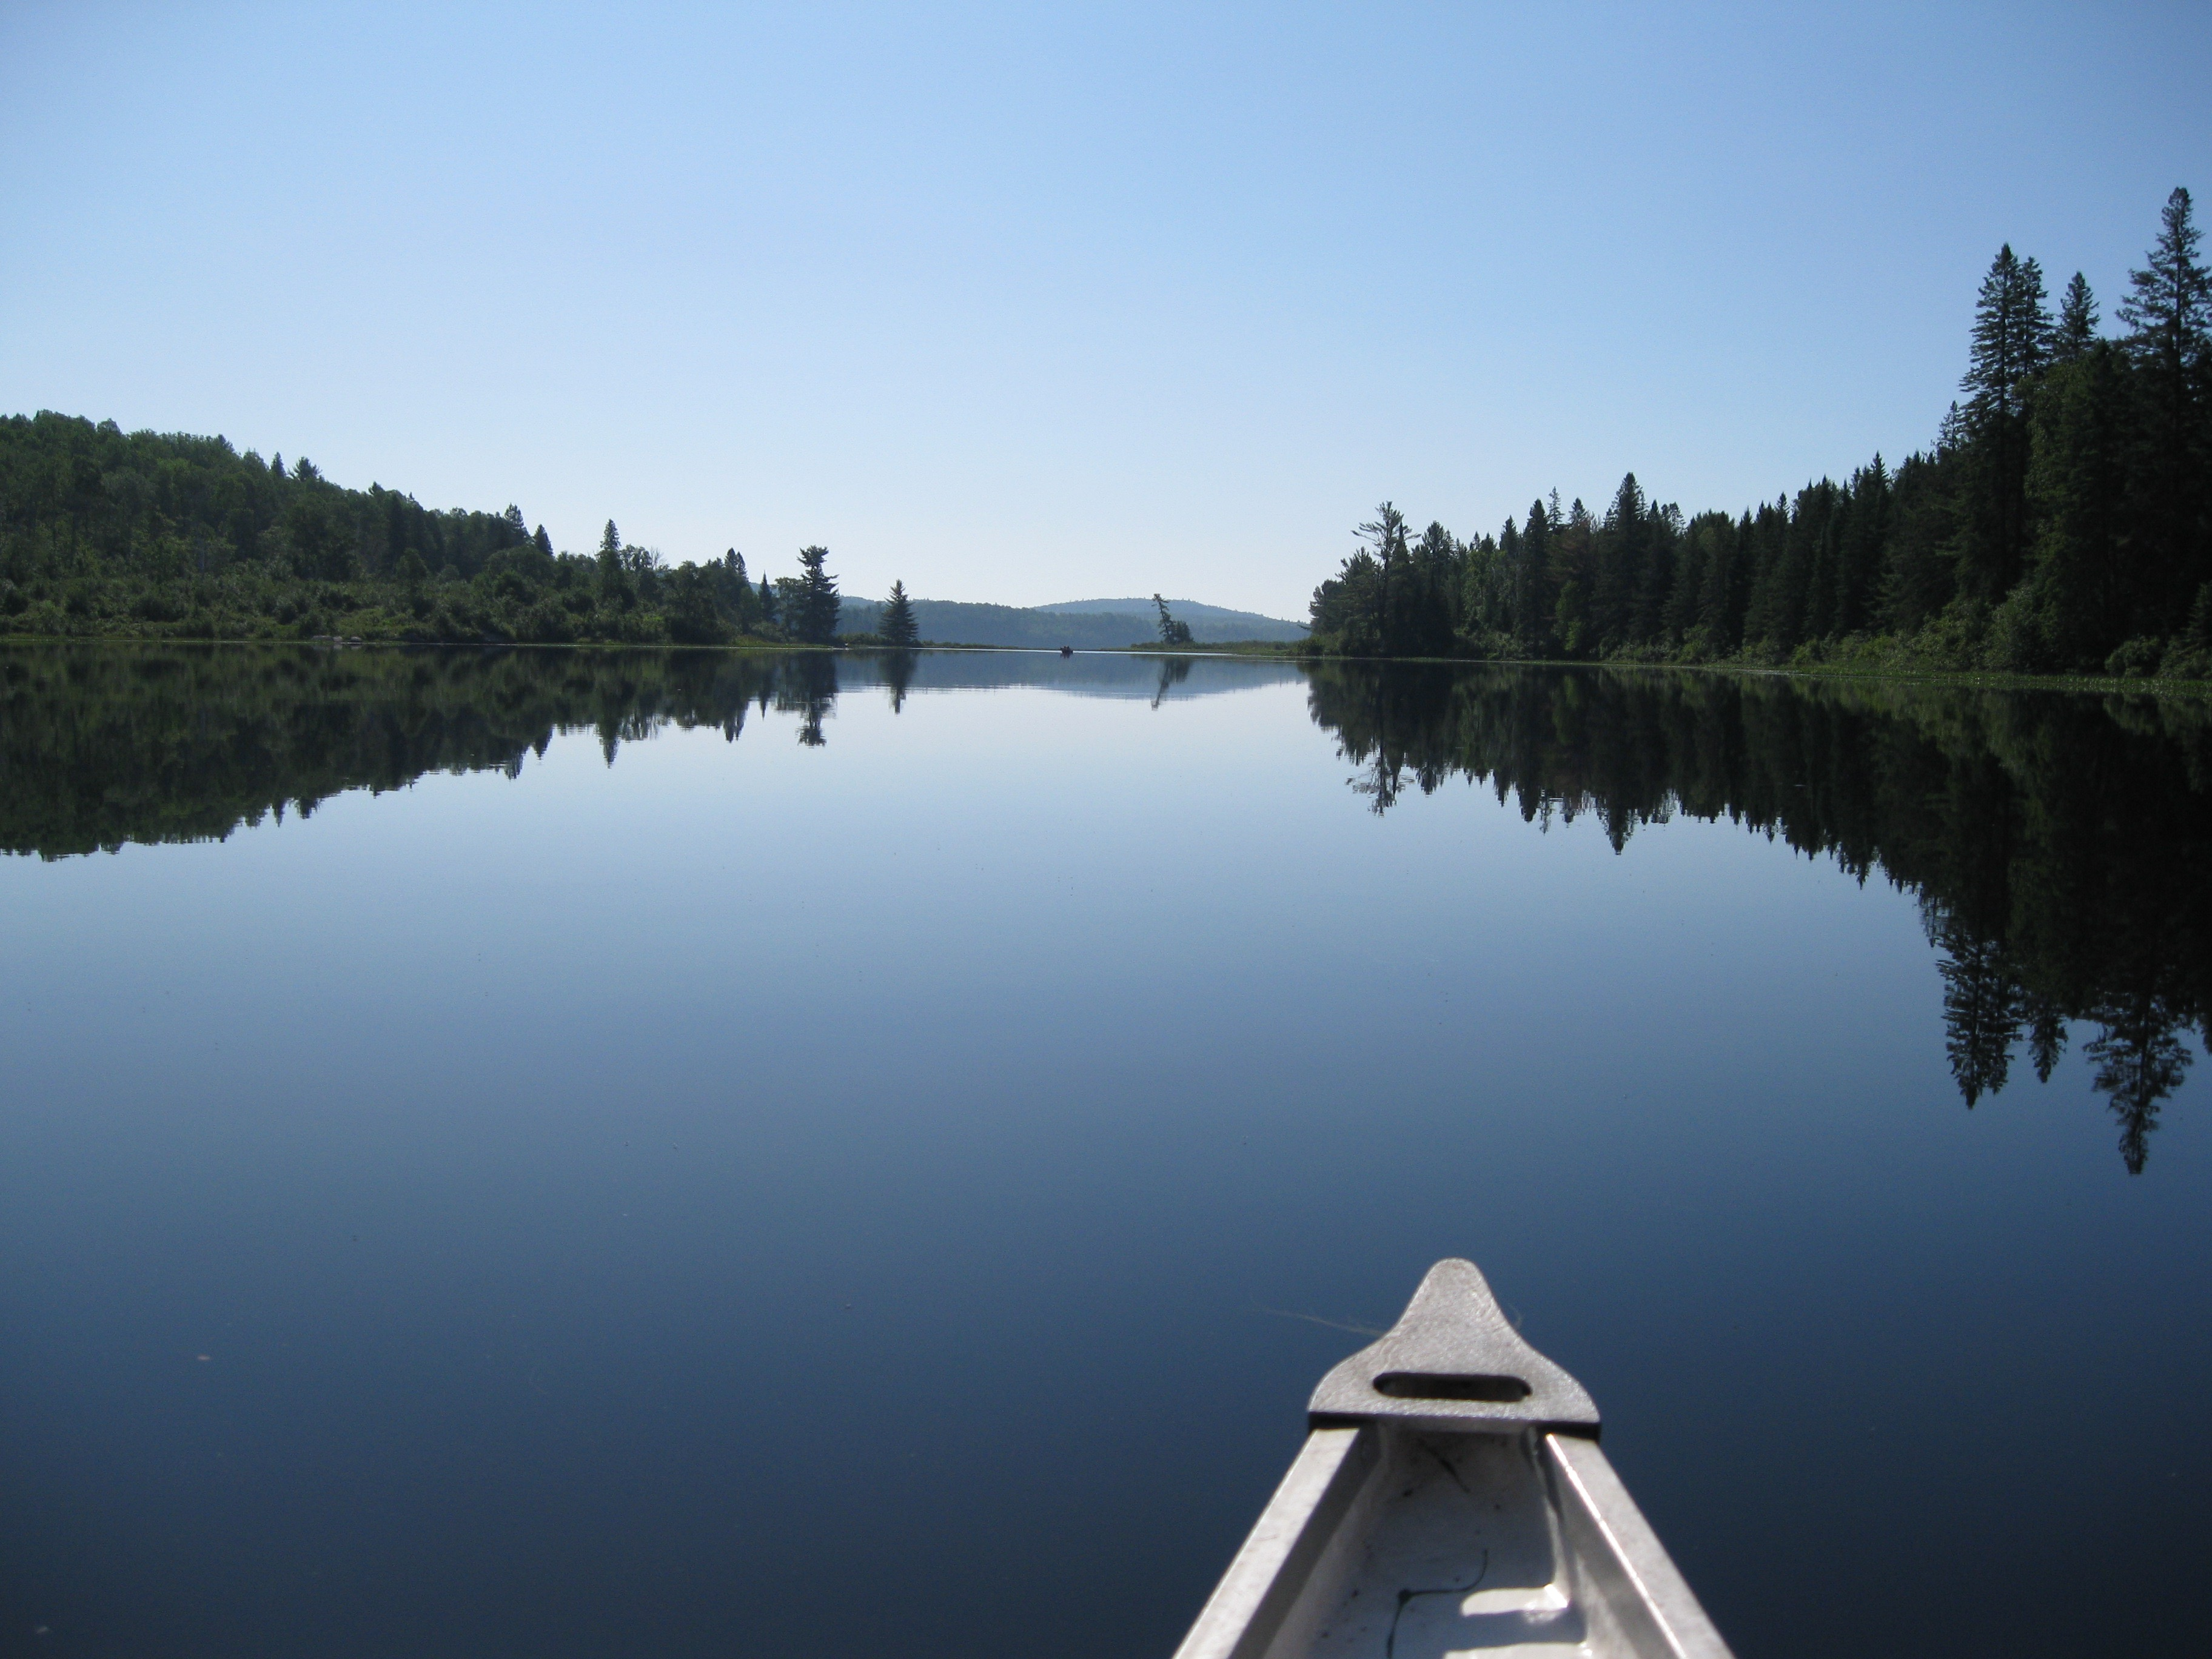 The nose of the canoe